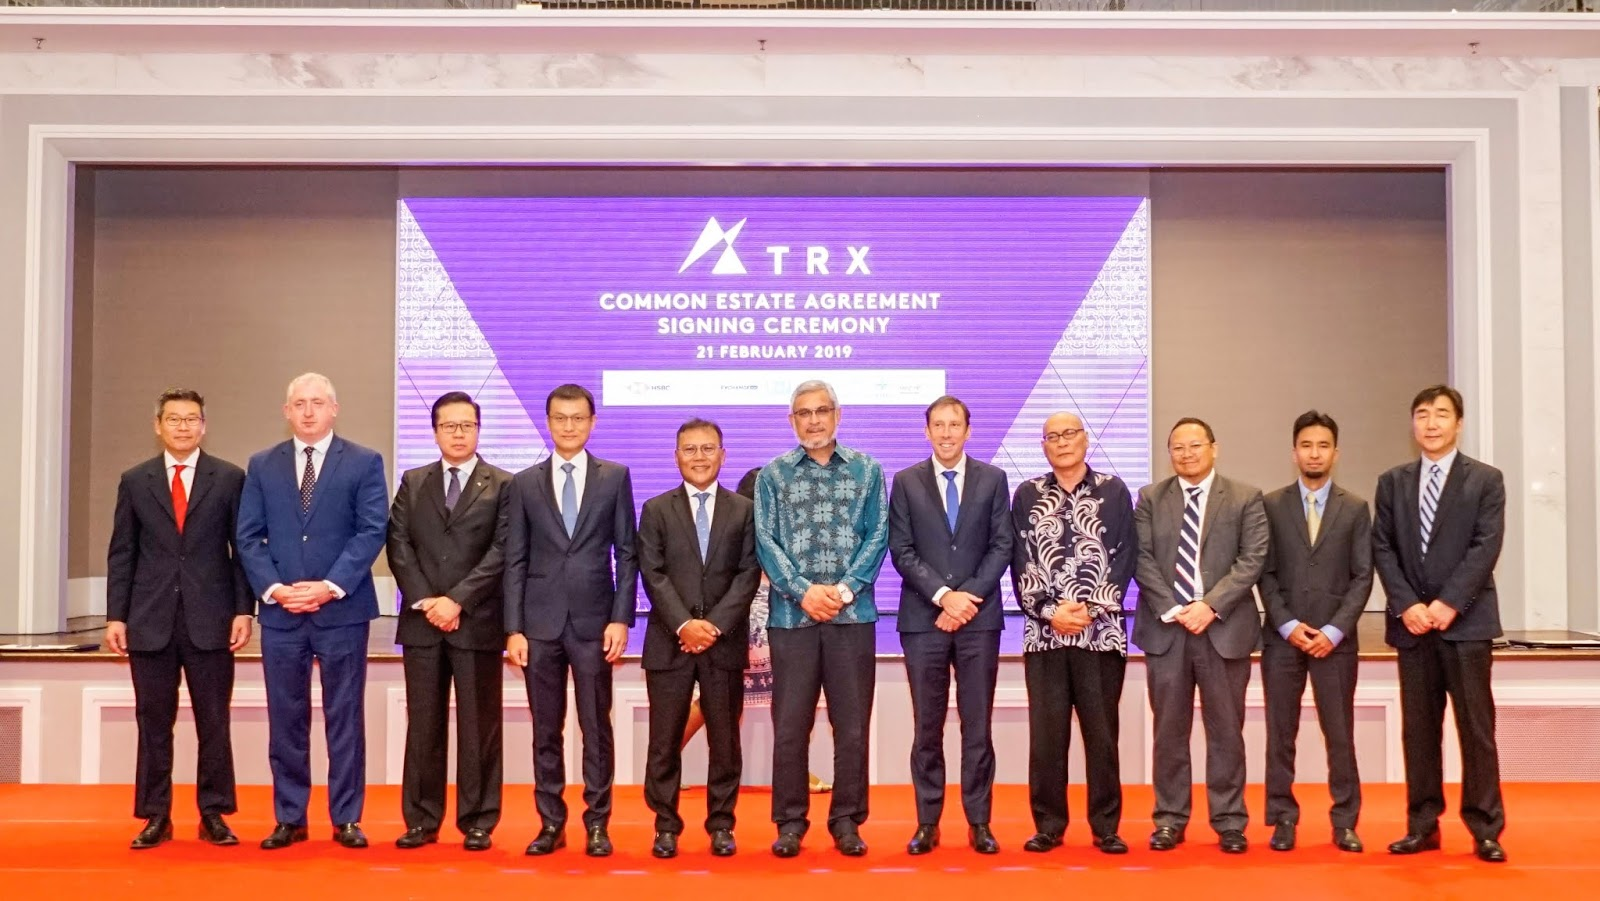 TRX CITY AND PARTNERS SIGN COMMON ESTATE AGREEMENT | Red Zoom Media